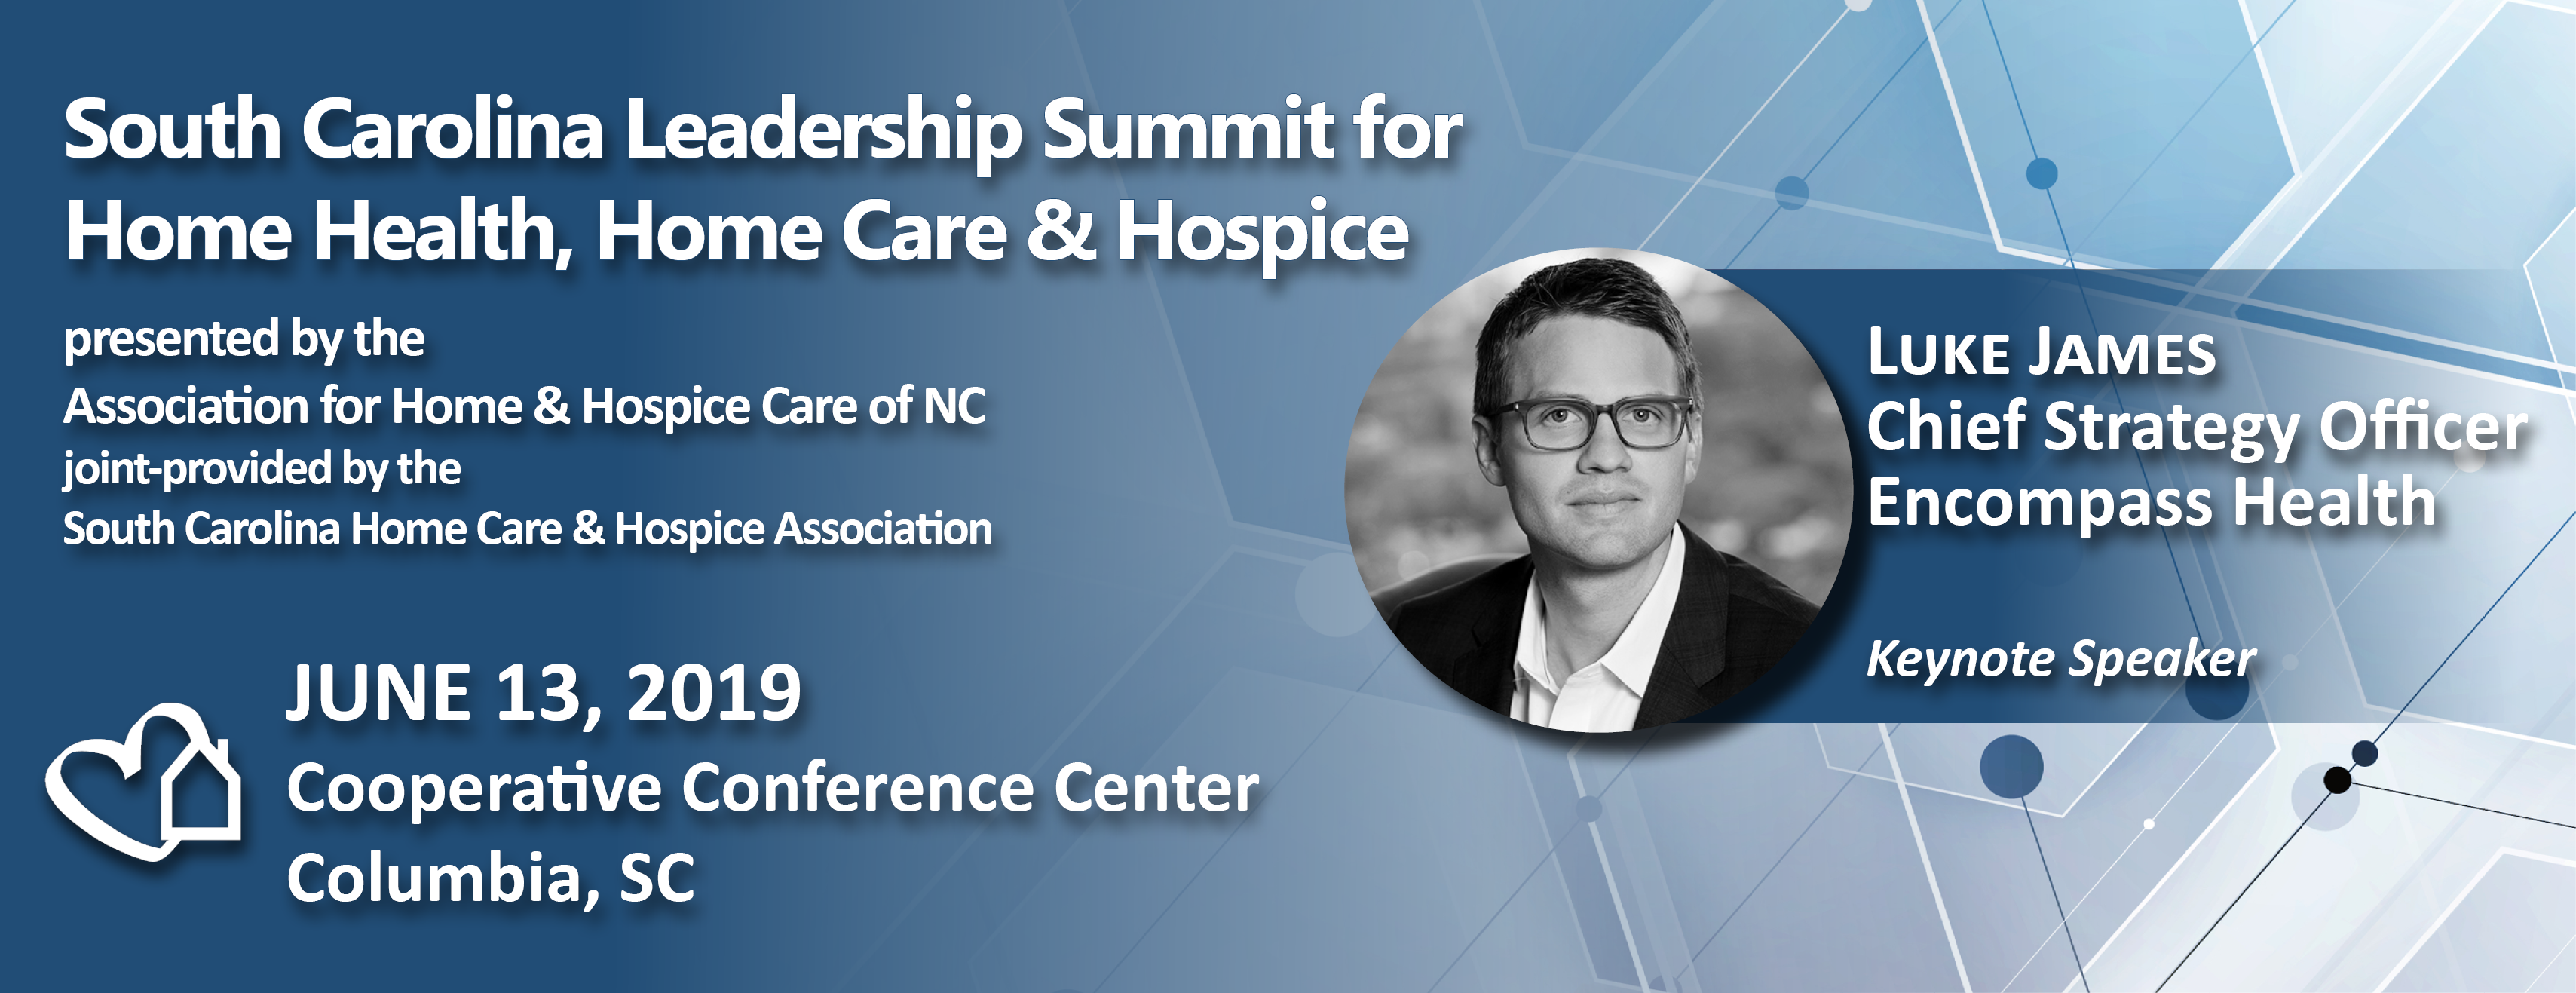 Display event - SC Leadership Summit for Home Health, Home Care and